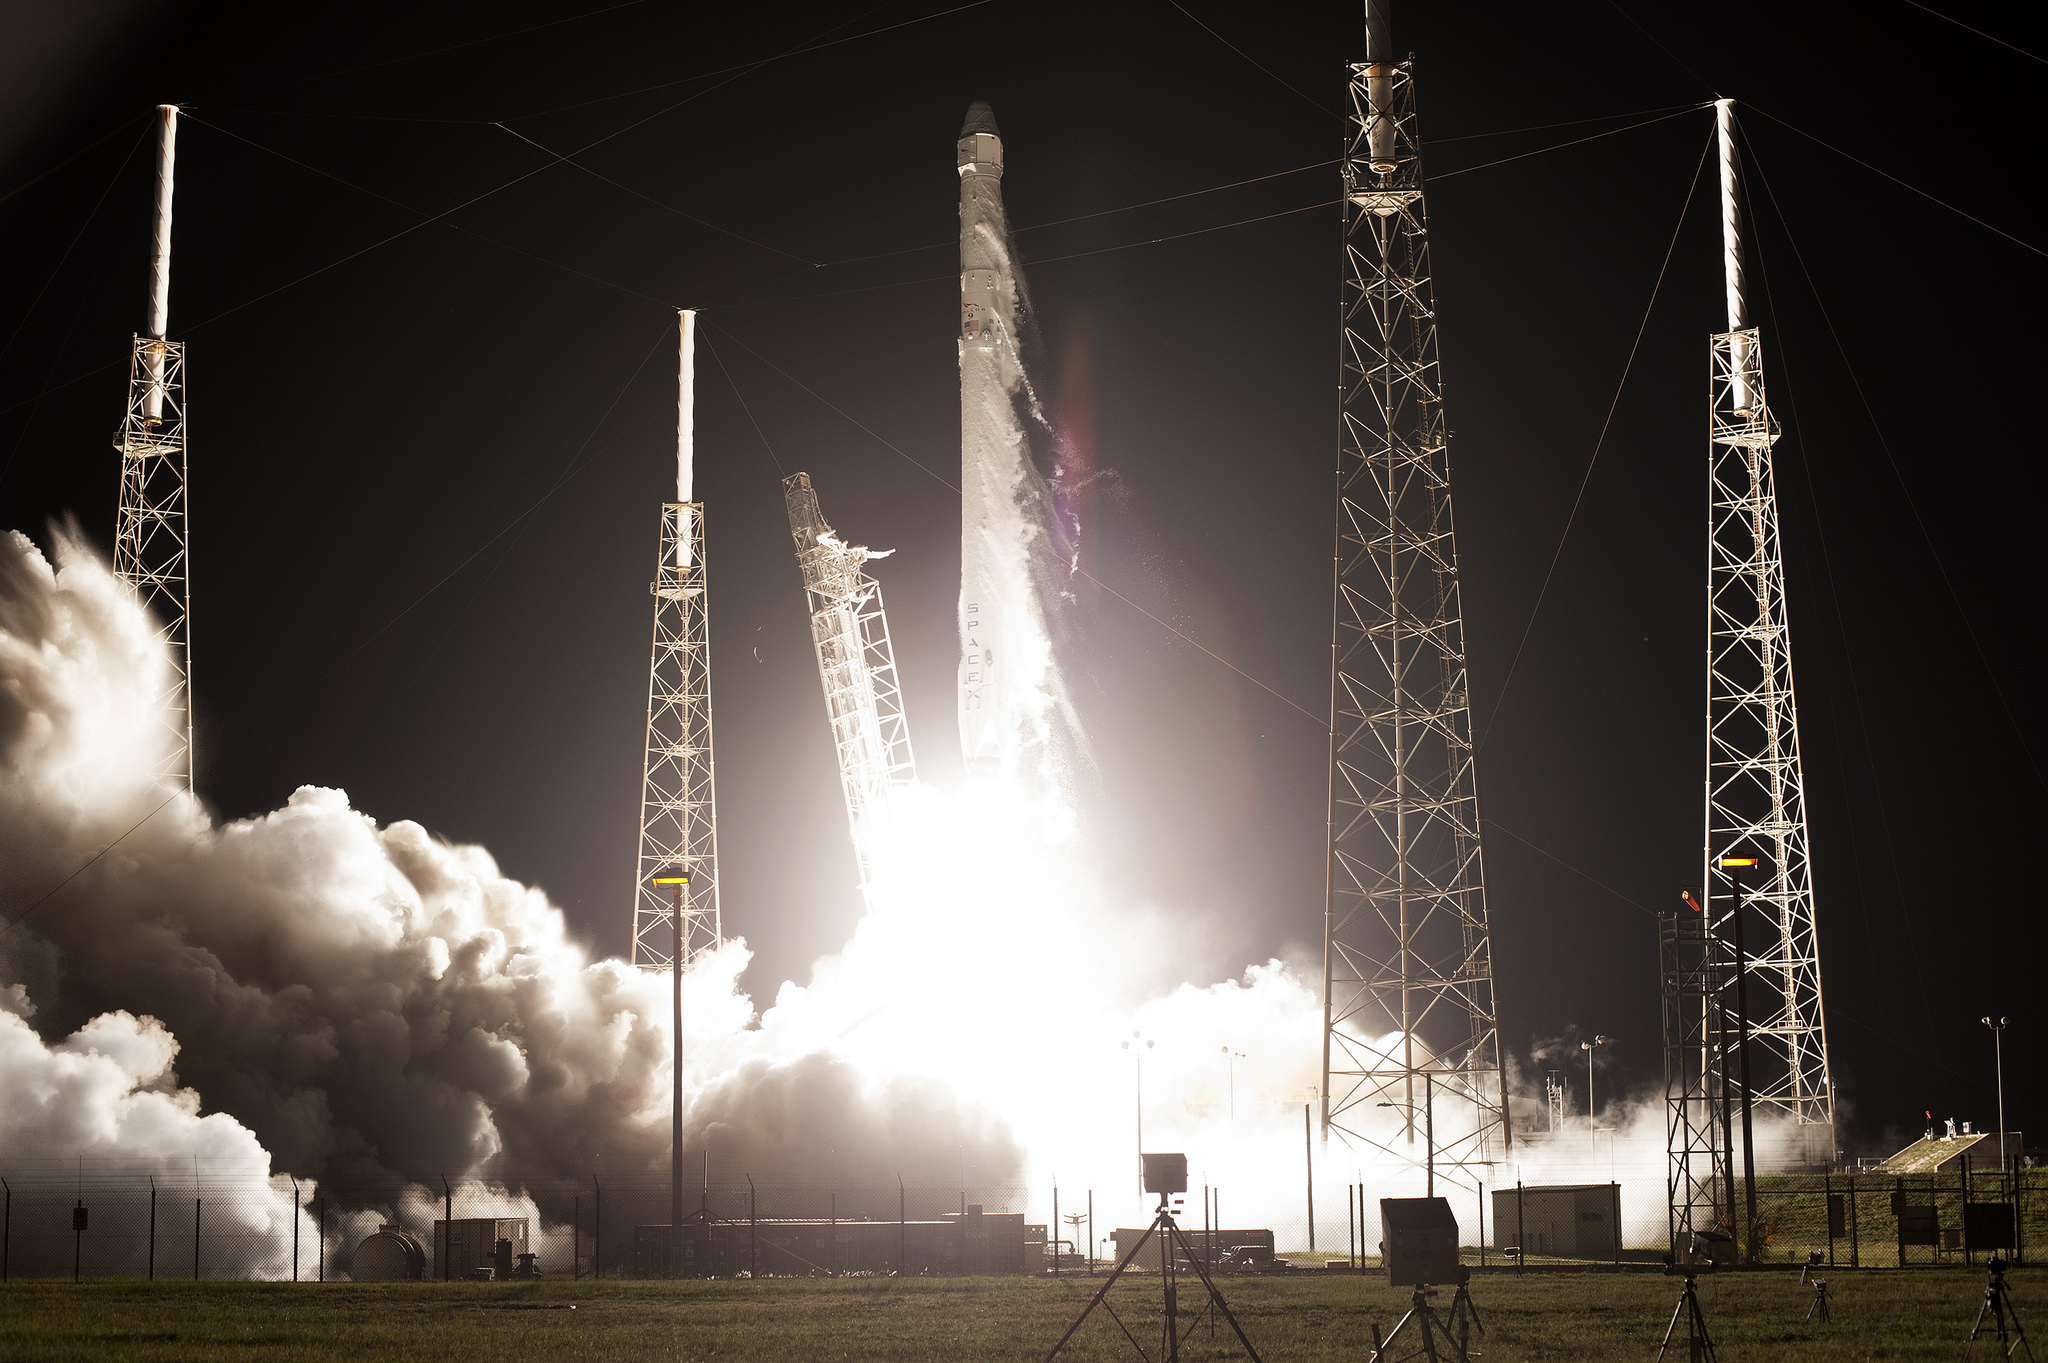 The SpaceX Falcon 9 and Dragon spacecraft lift off from Space Launch Complex 40 on July 18, 2017, at the start of the CRS-9 mission.